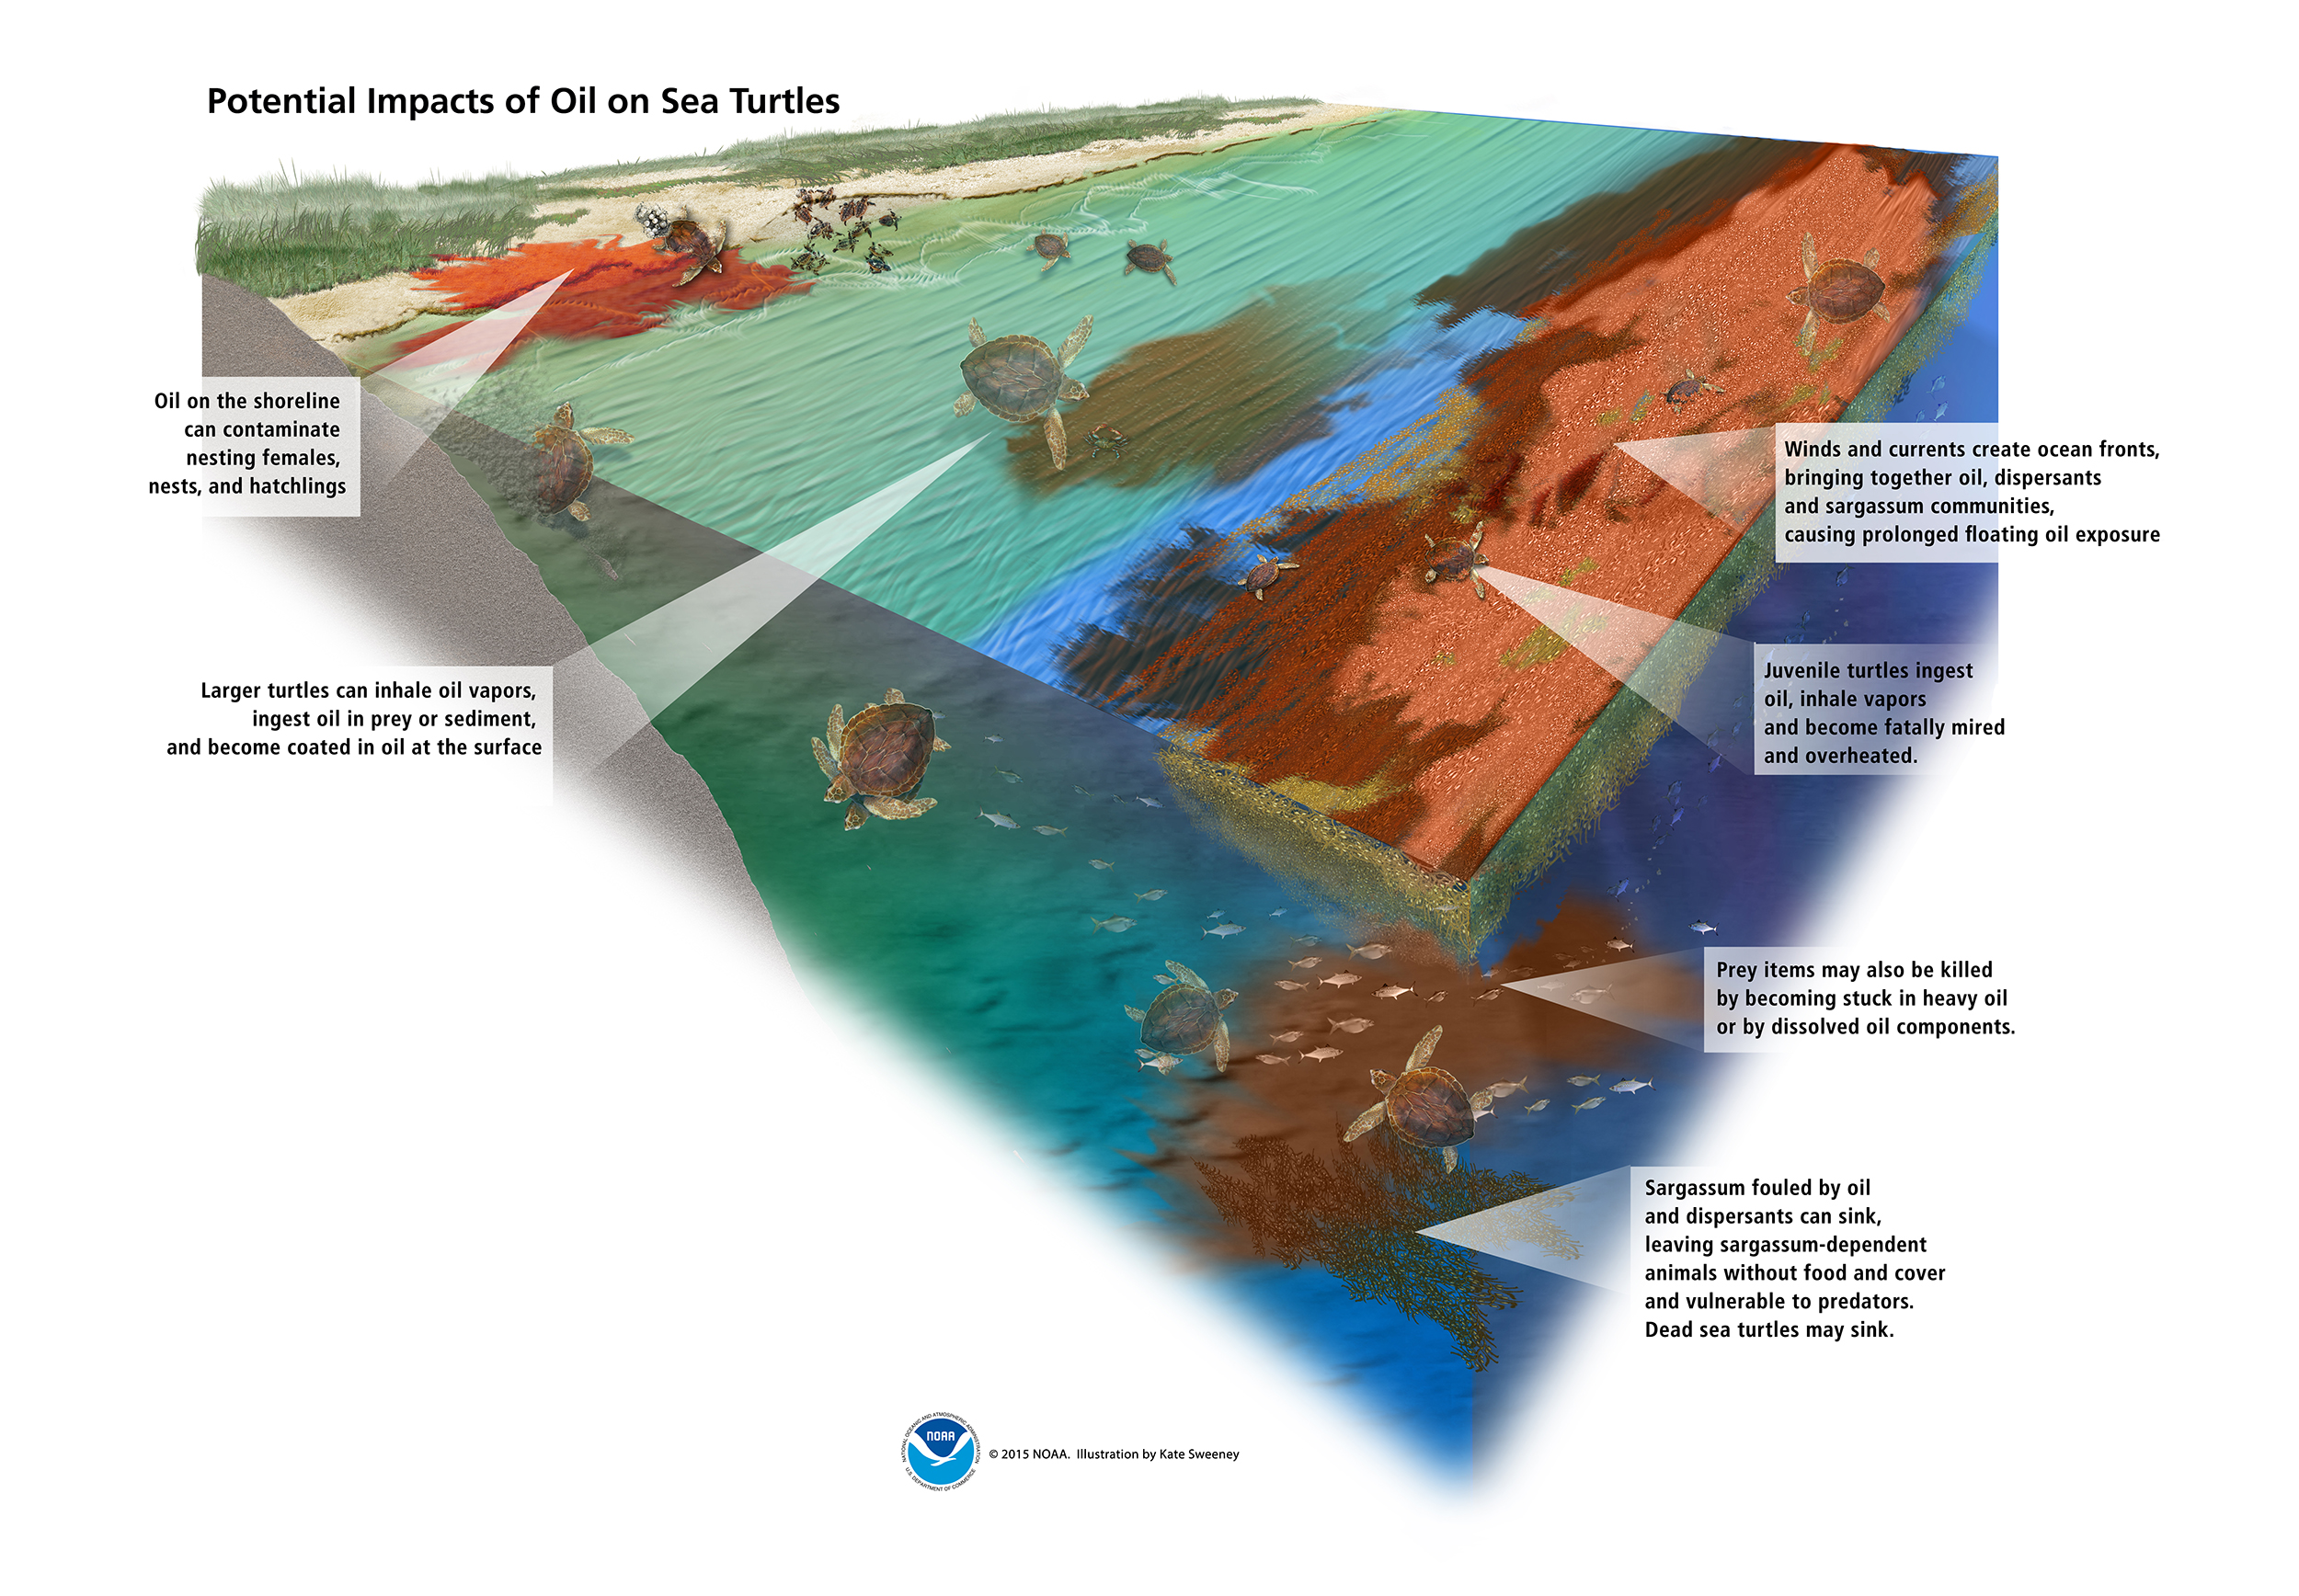 How Do Oil Spills Affect Sea Turtles Response